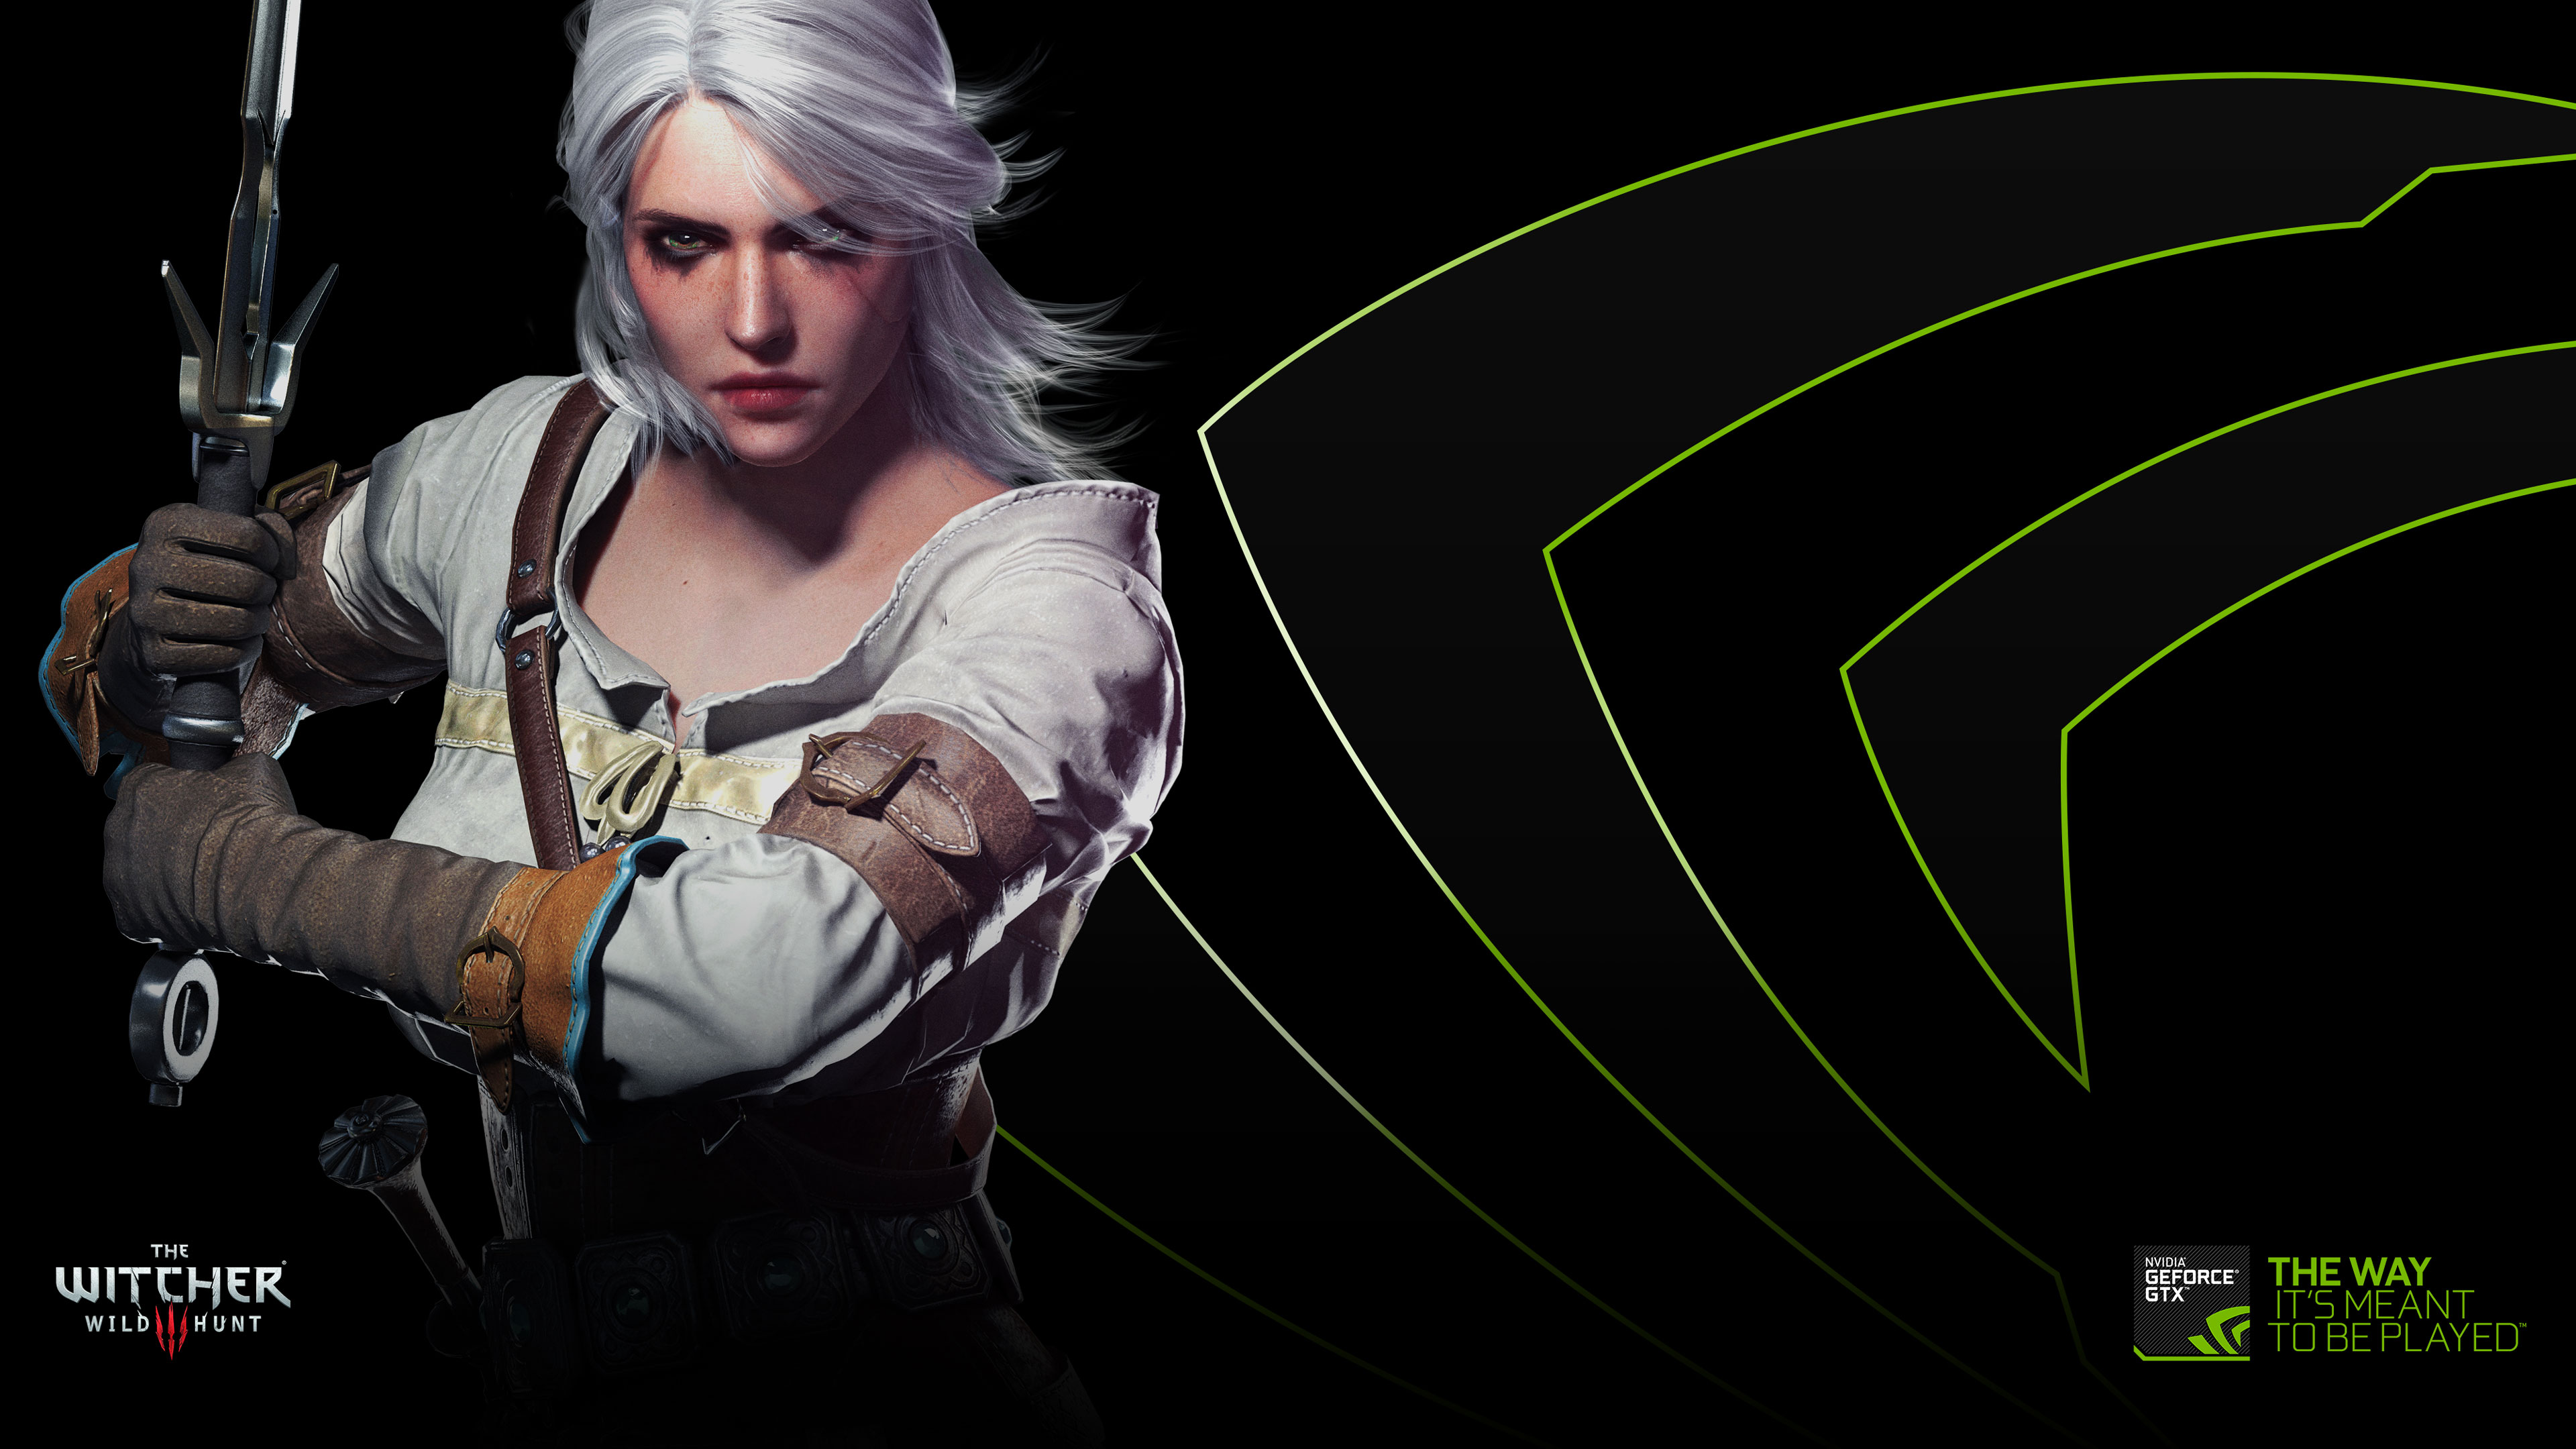 Ciri The Witcher Wild Hunt Wallpapers HD Desktop and Mobile